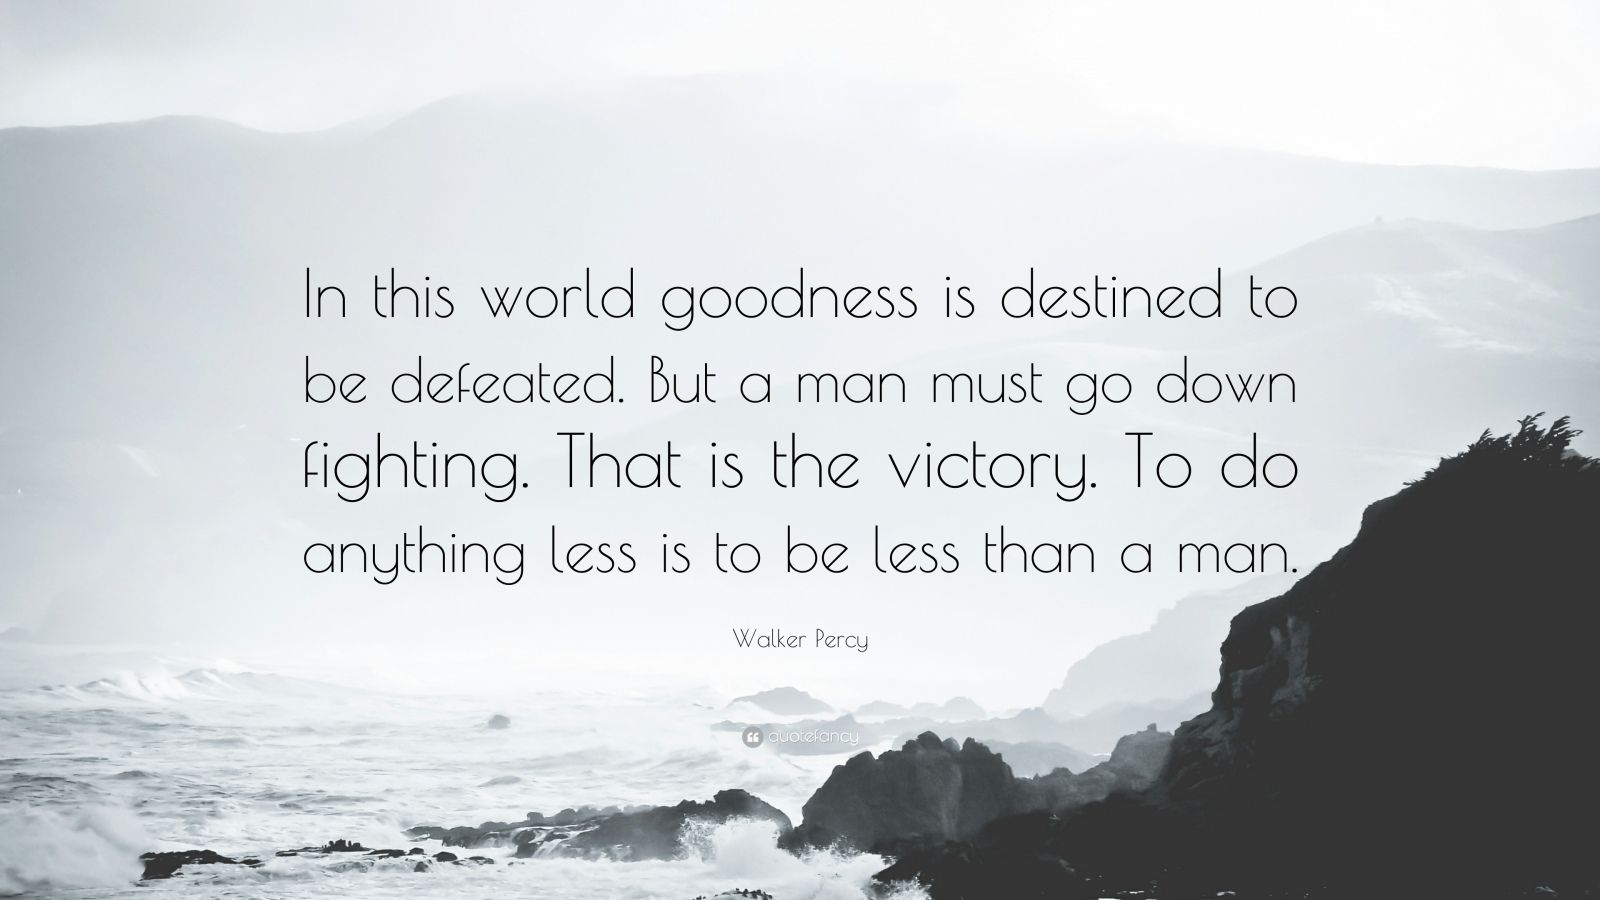 in this world goodness is destined to be defeated essay night